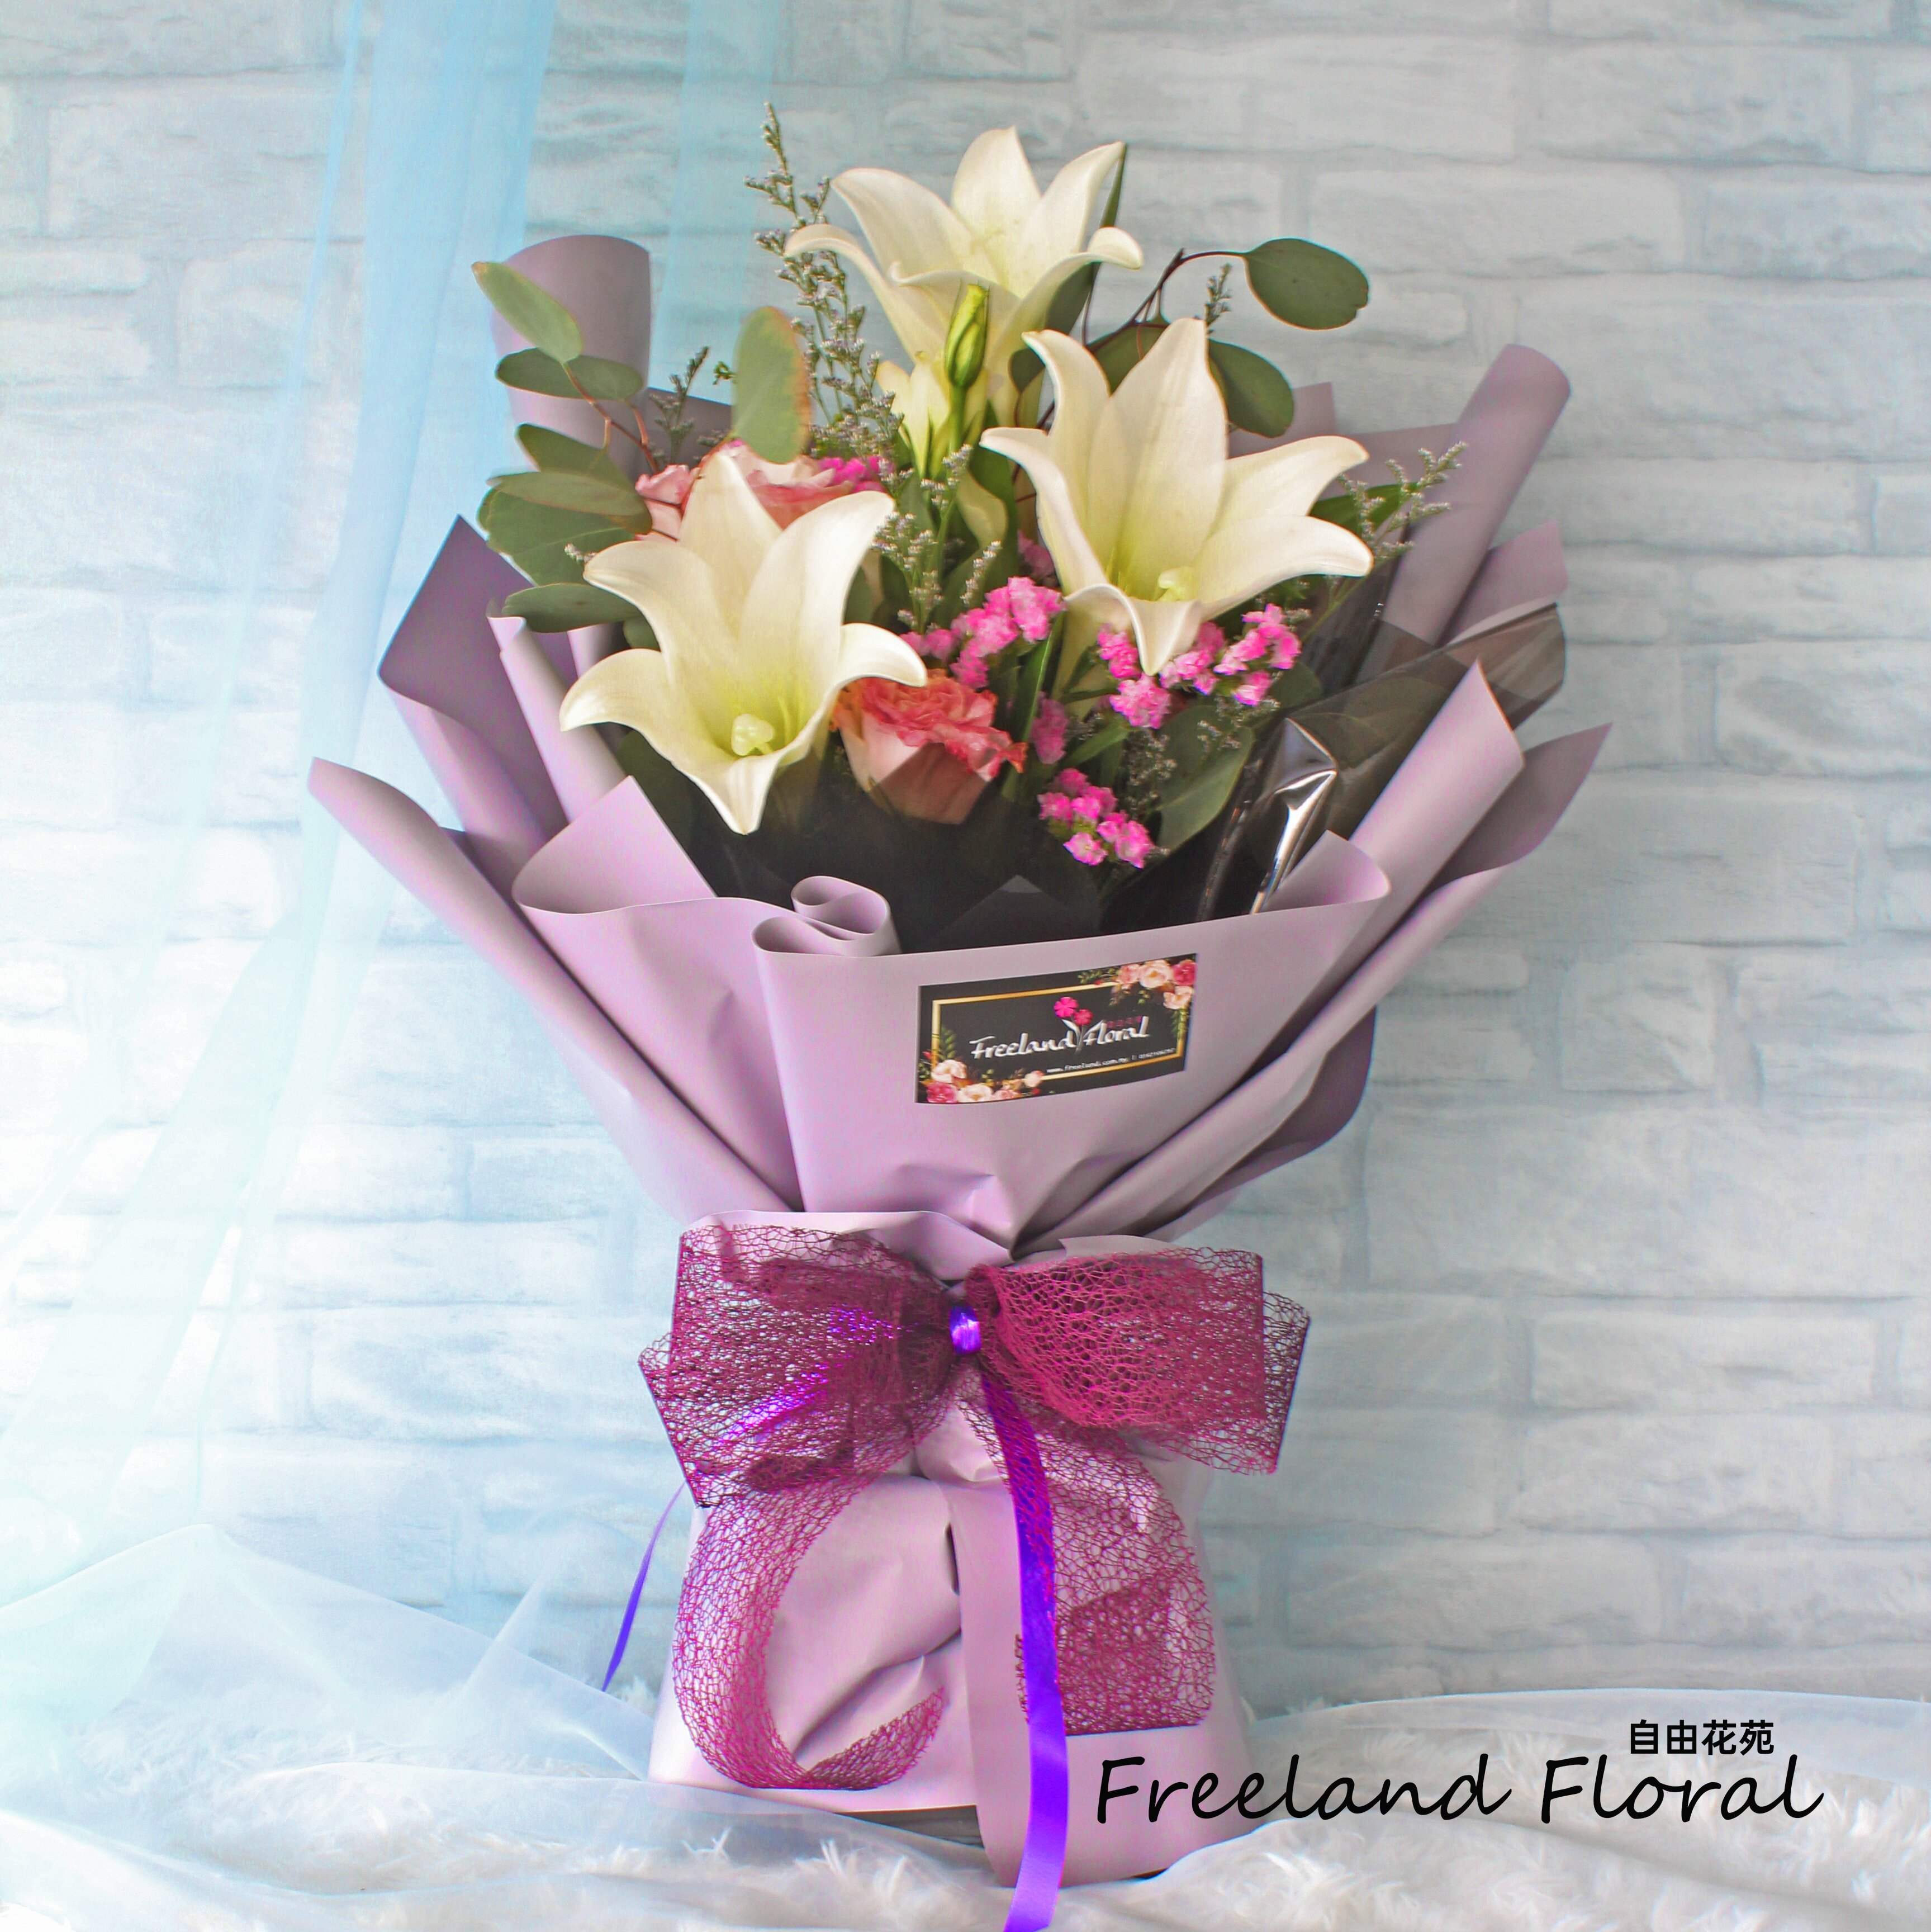 Fly Me To The Moon - Freeland Floral 自由花苑